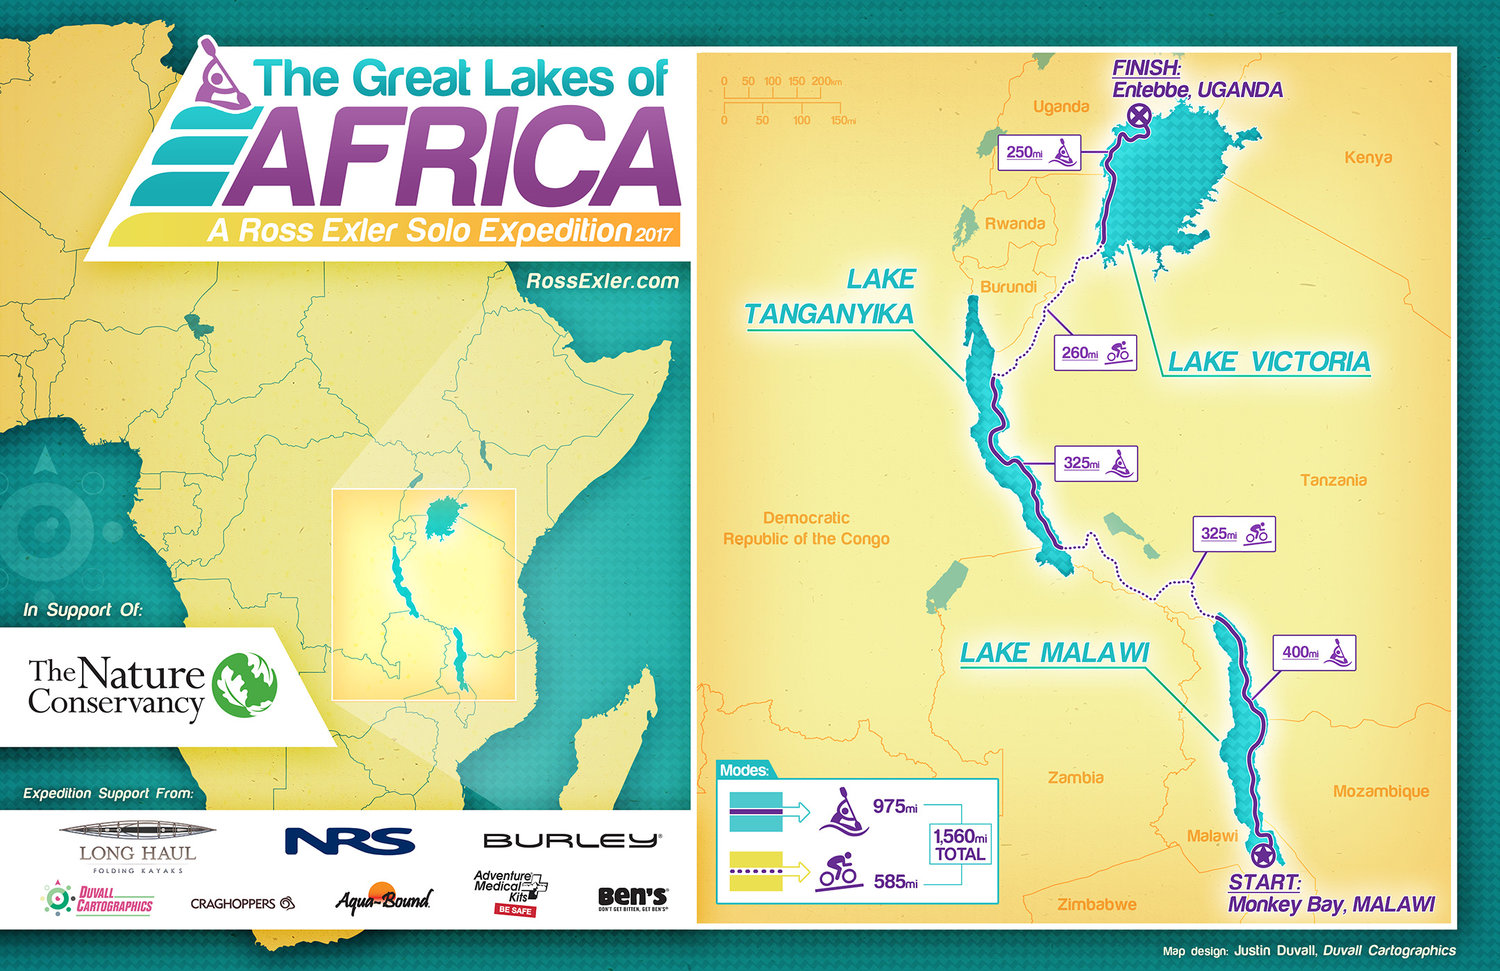 Africa Map Lakes.African Great Lakes Trip Ross Exler